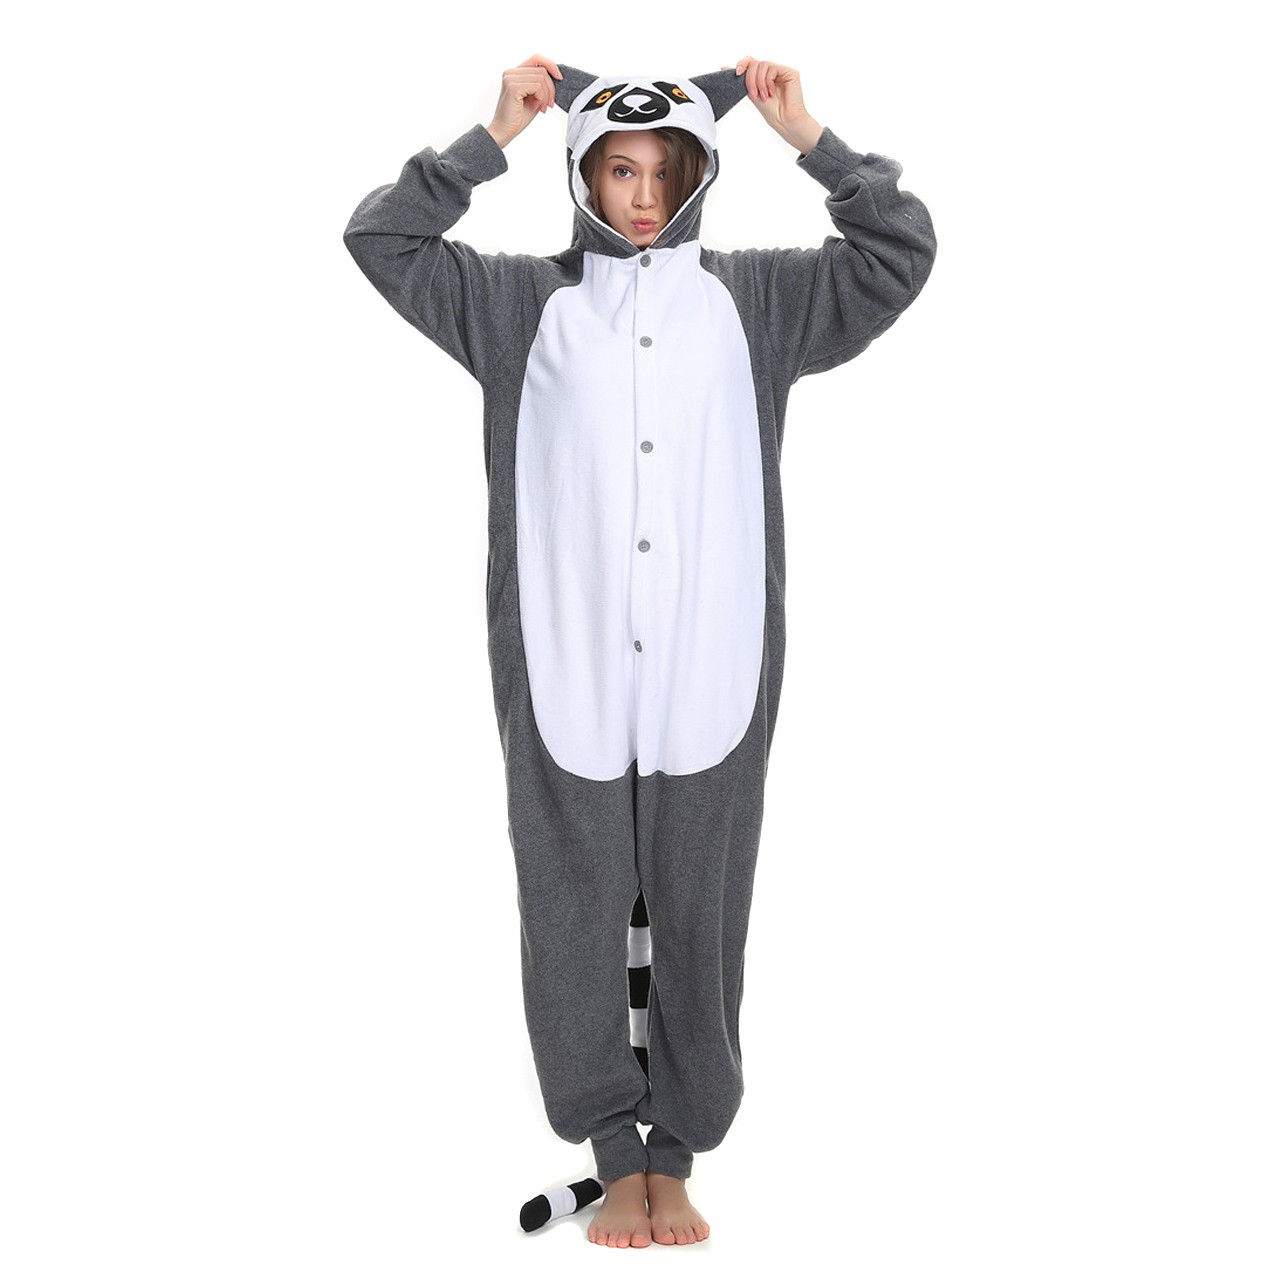 ecde5685741f Lemur Onesie Kigurumi Animal Onesies Women   Men Halloween Costumes